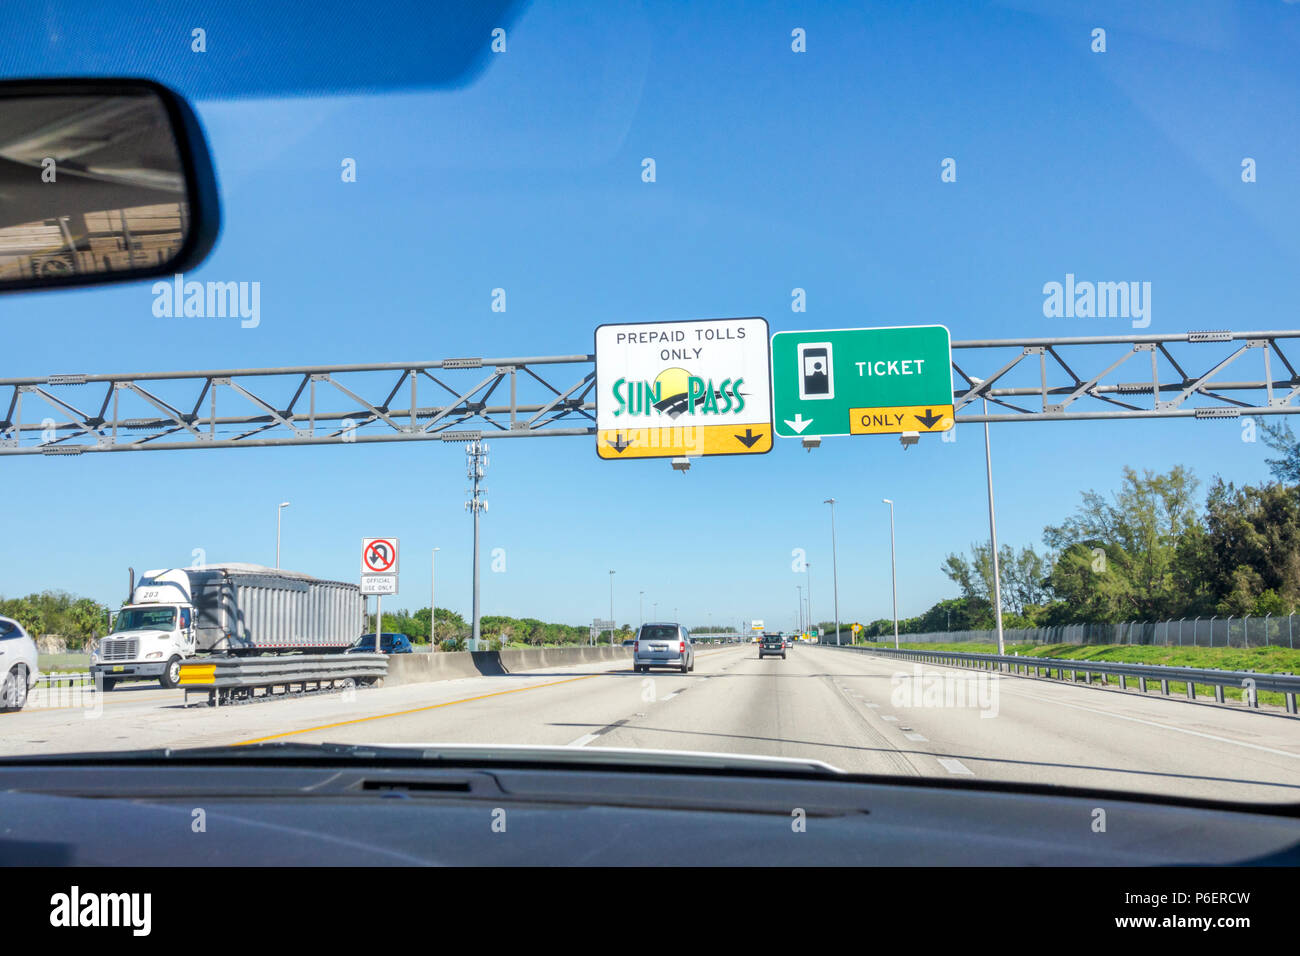 Florida Fort Ft. Lauderdale Florida Turnpike toll road SunPass prepaid electronic toll collection system traffic highway car truck moving vehicles lan - Stock Image